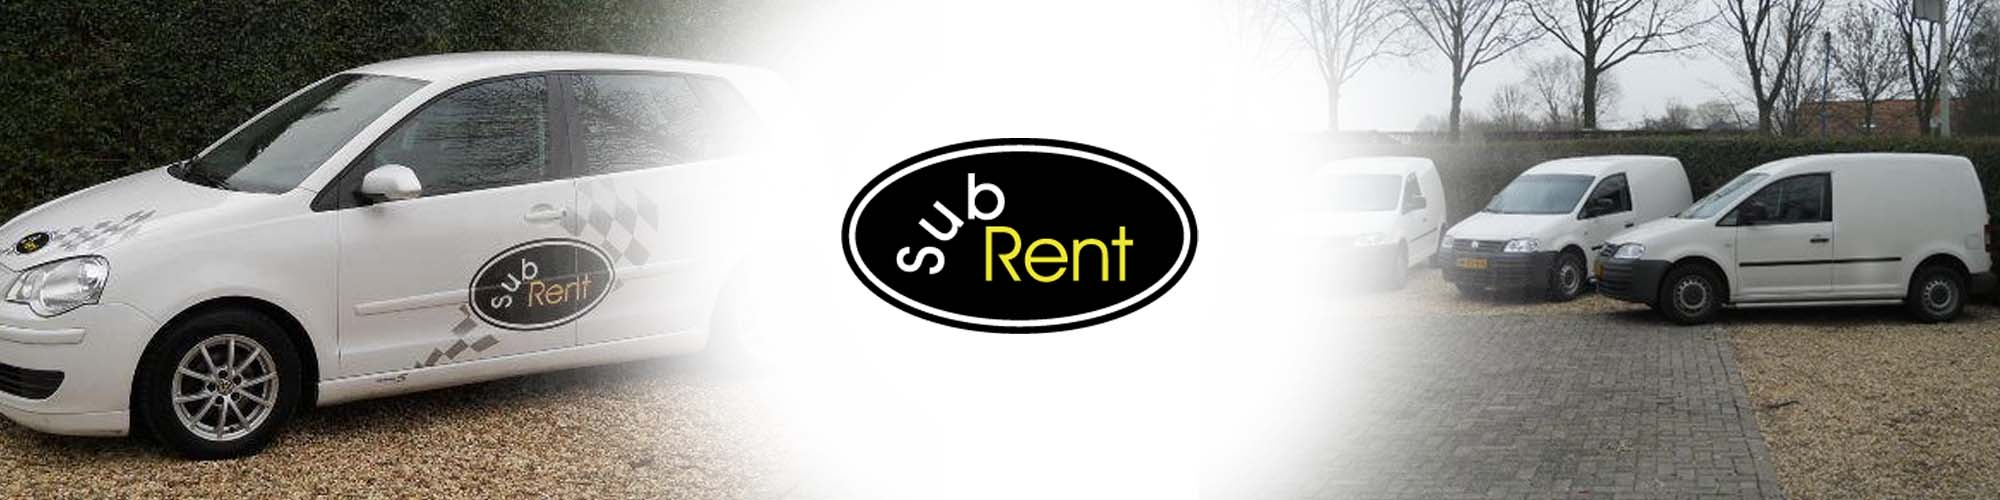 subrent